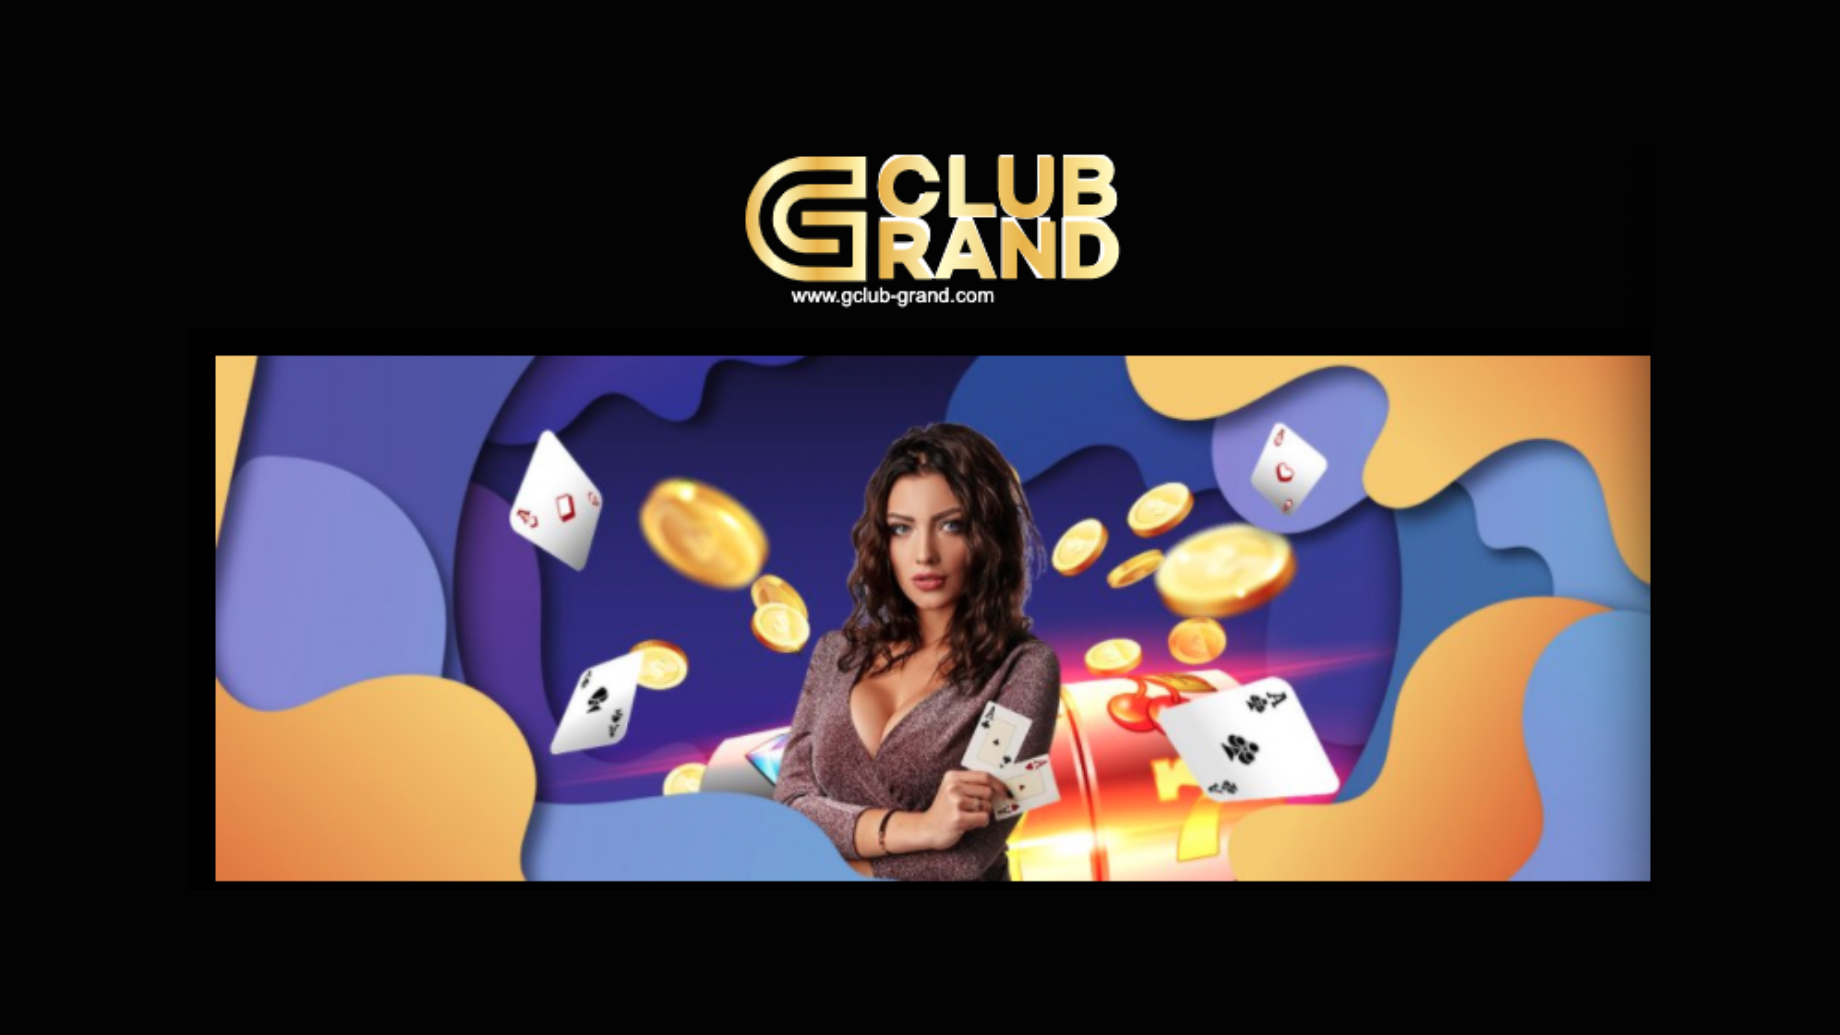 Why Gclub Grand is a Leading Online Casino in Asia